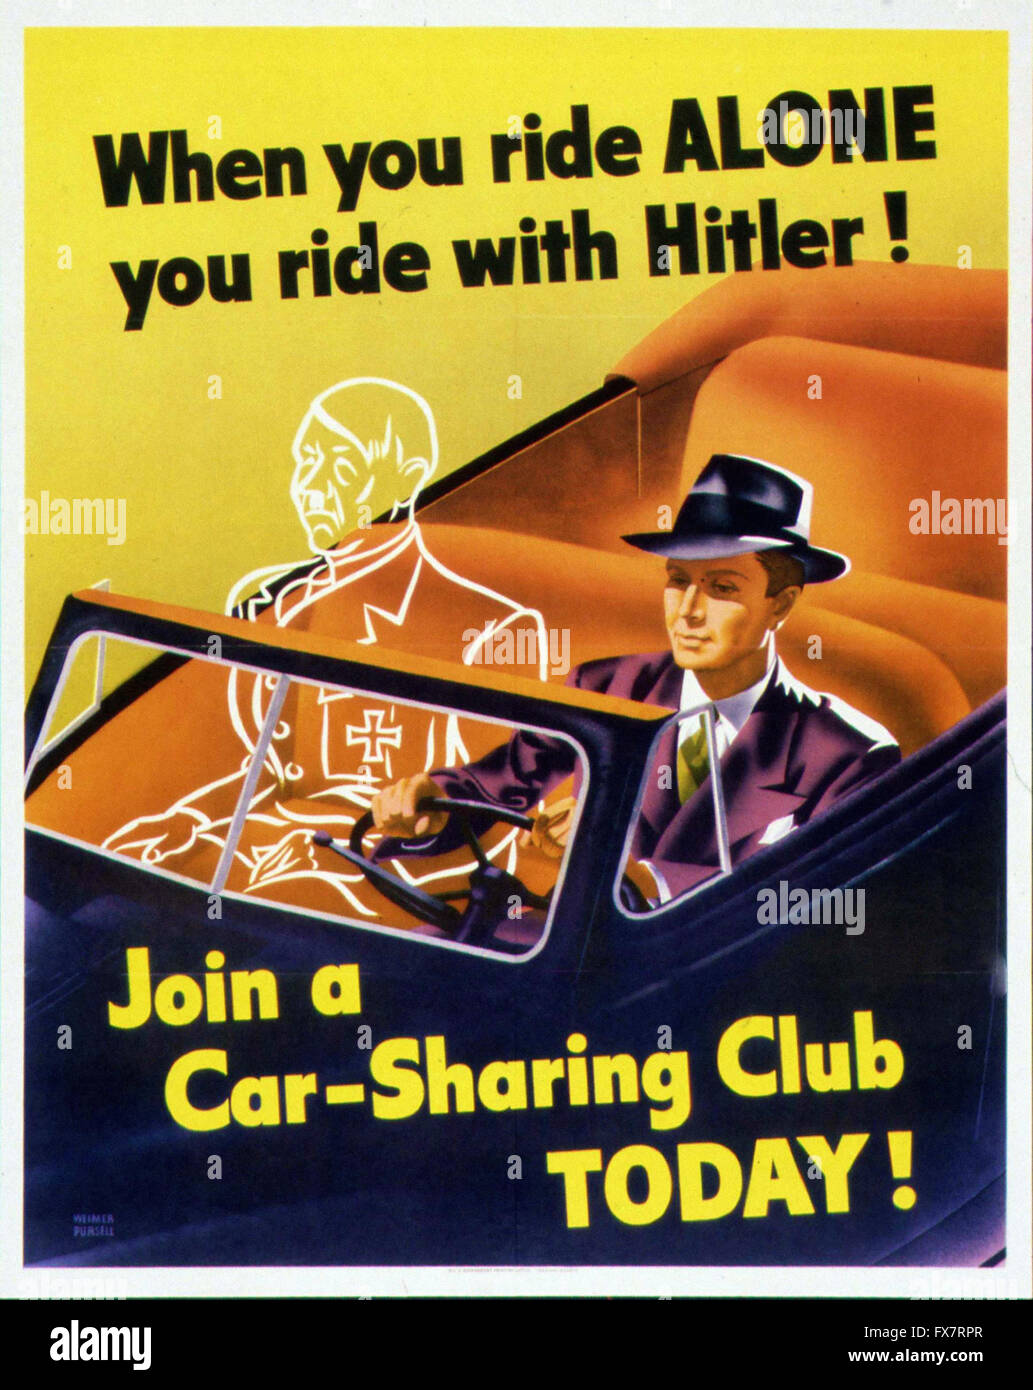 When You Ride Alone You Ride With Hitler ! - World War II - U.S ...